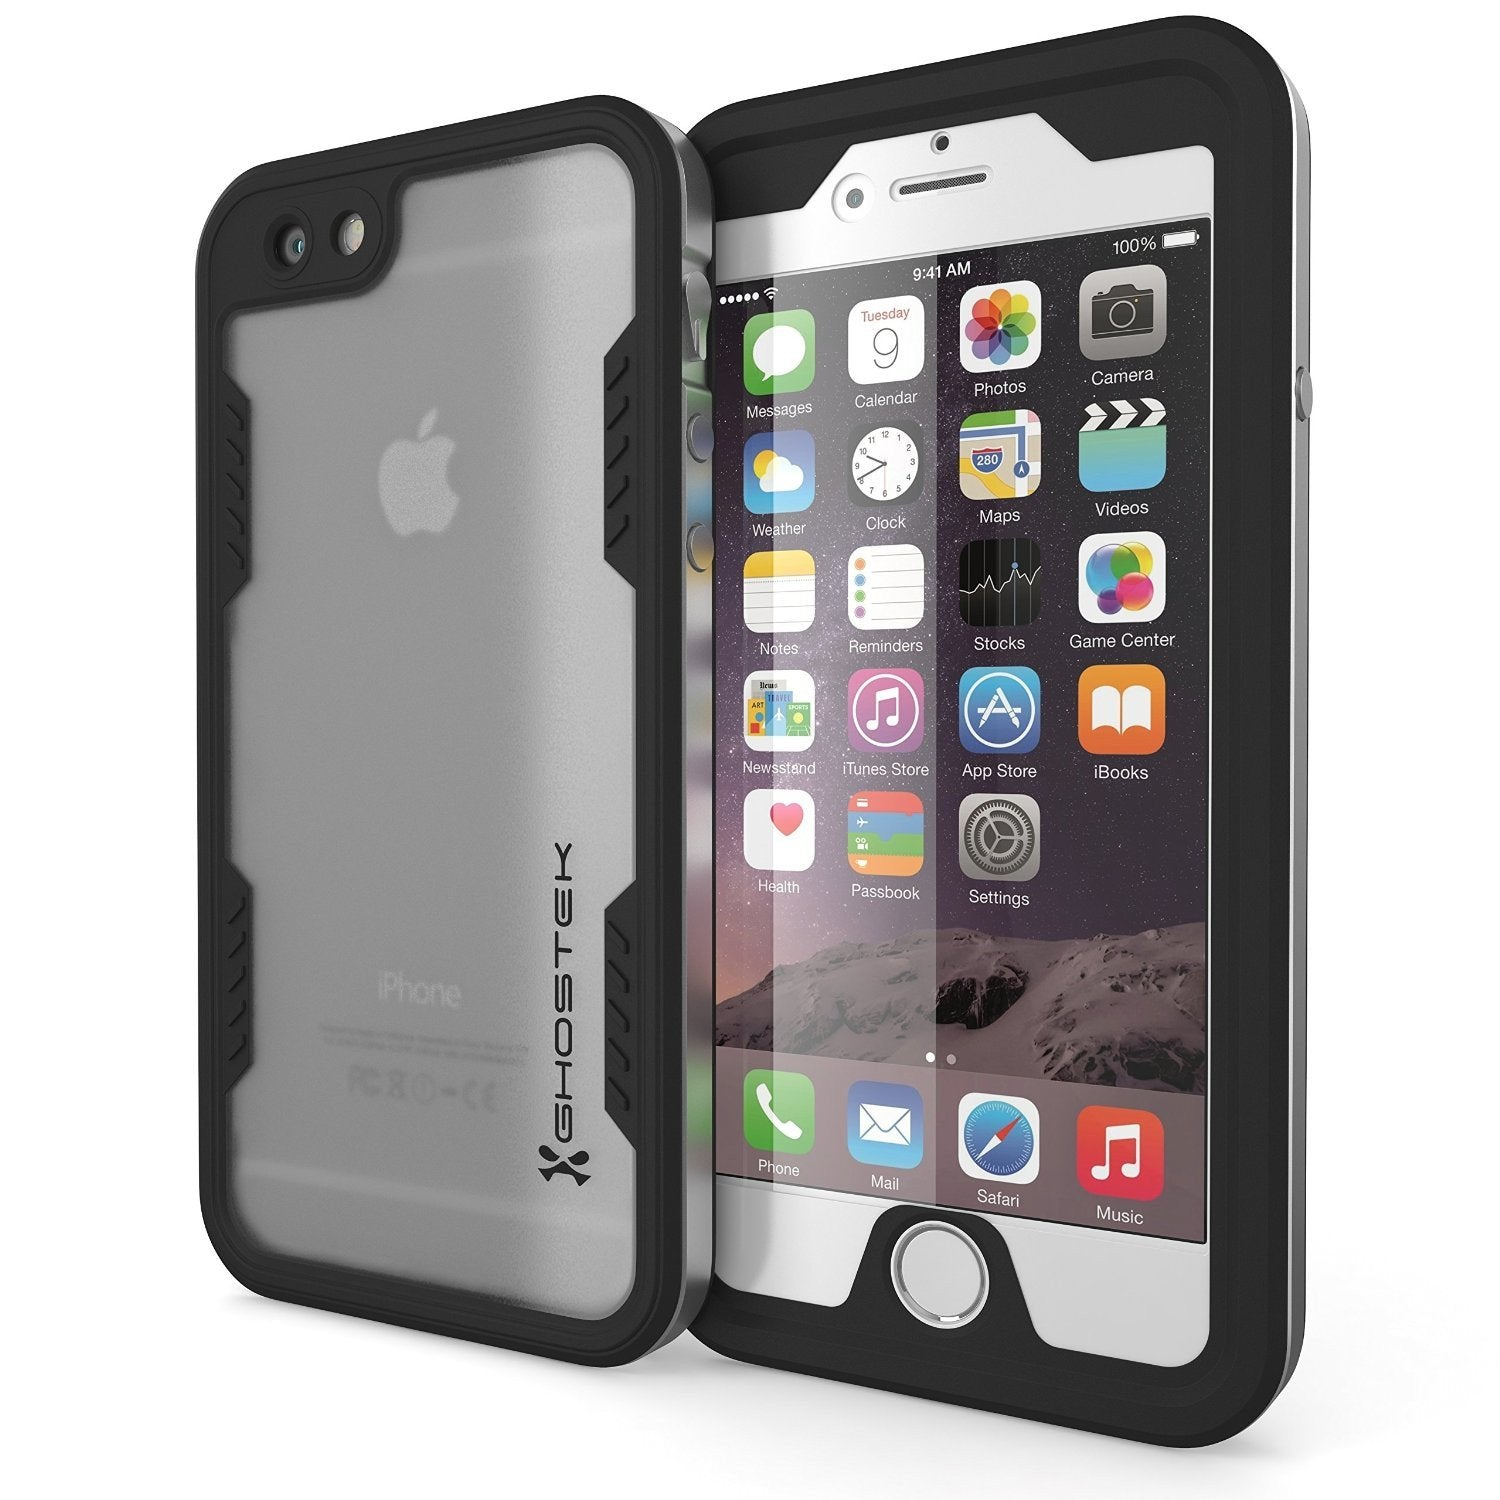 iPhone 6S+/6+ Plus Waterproof Case Ghostek Atomic 2.0 Silver w/ Attached Screen Protector | Slim